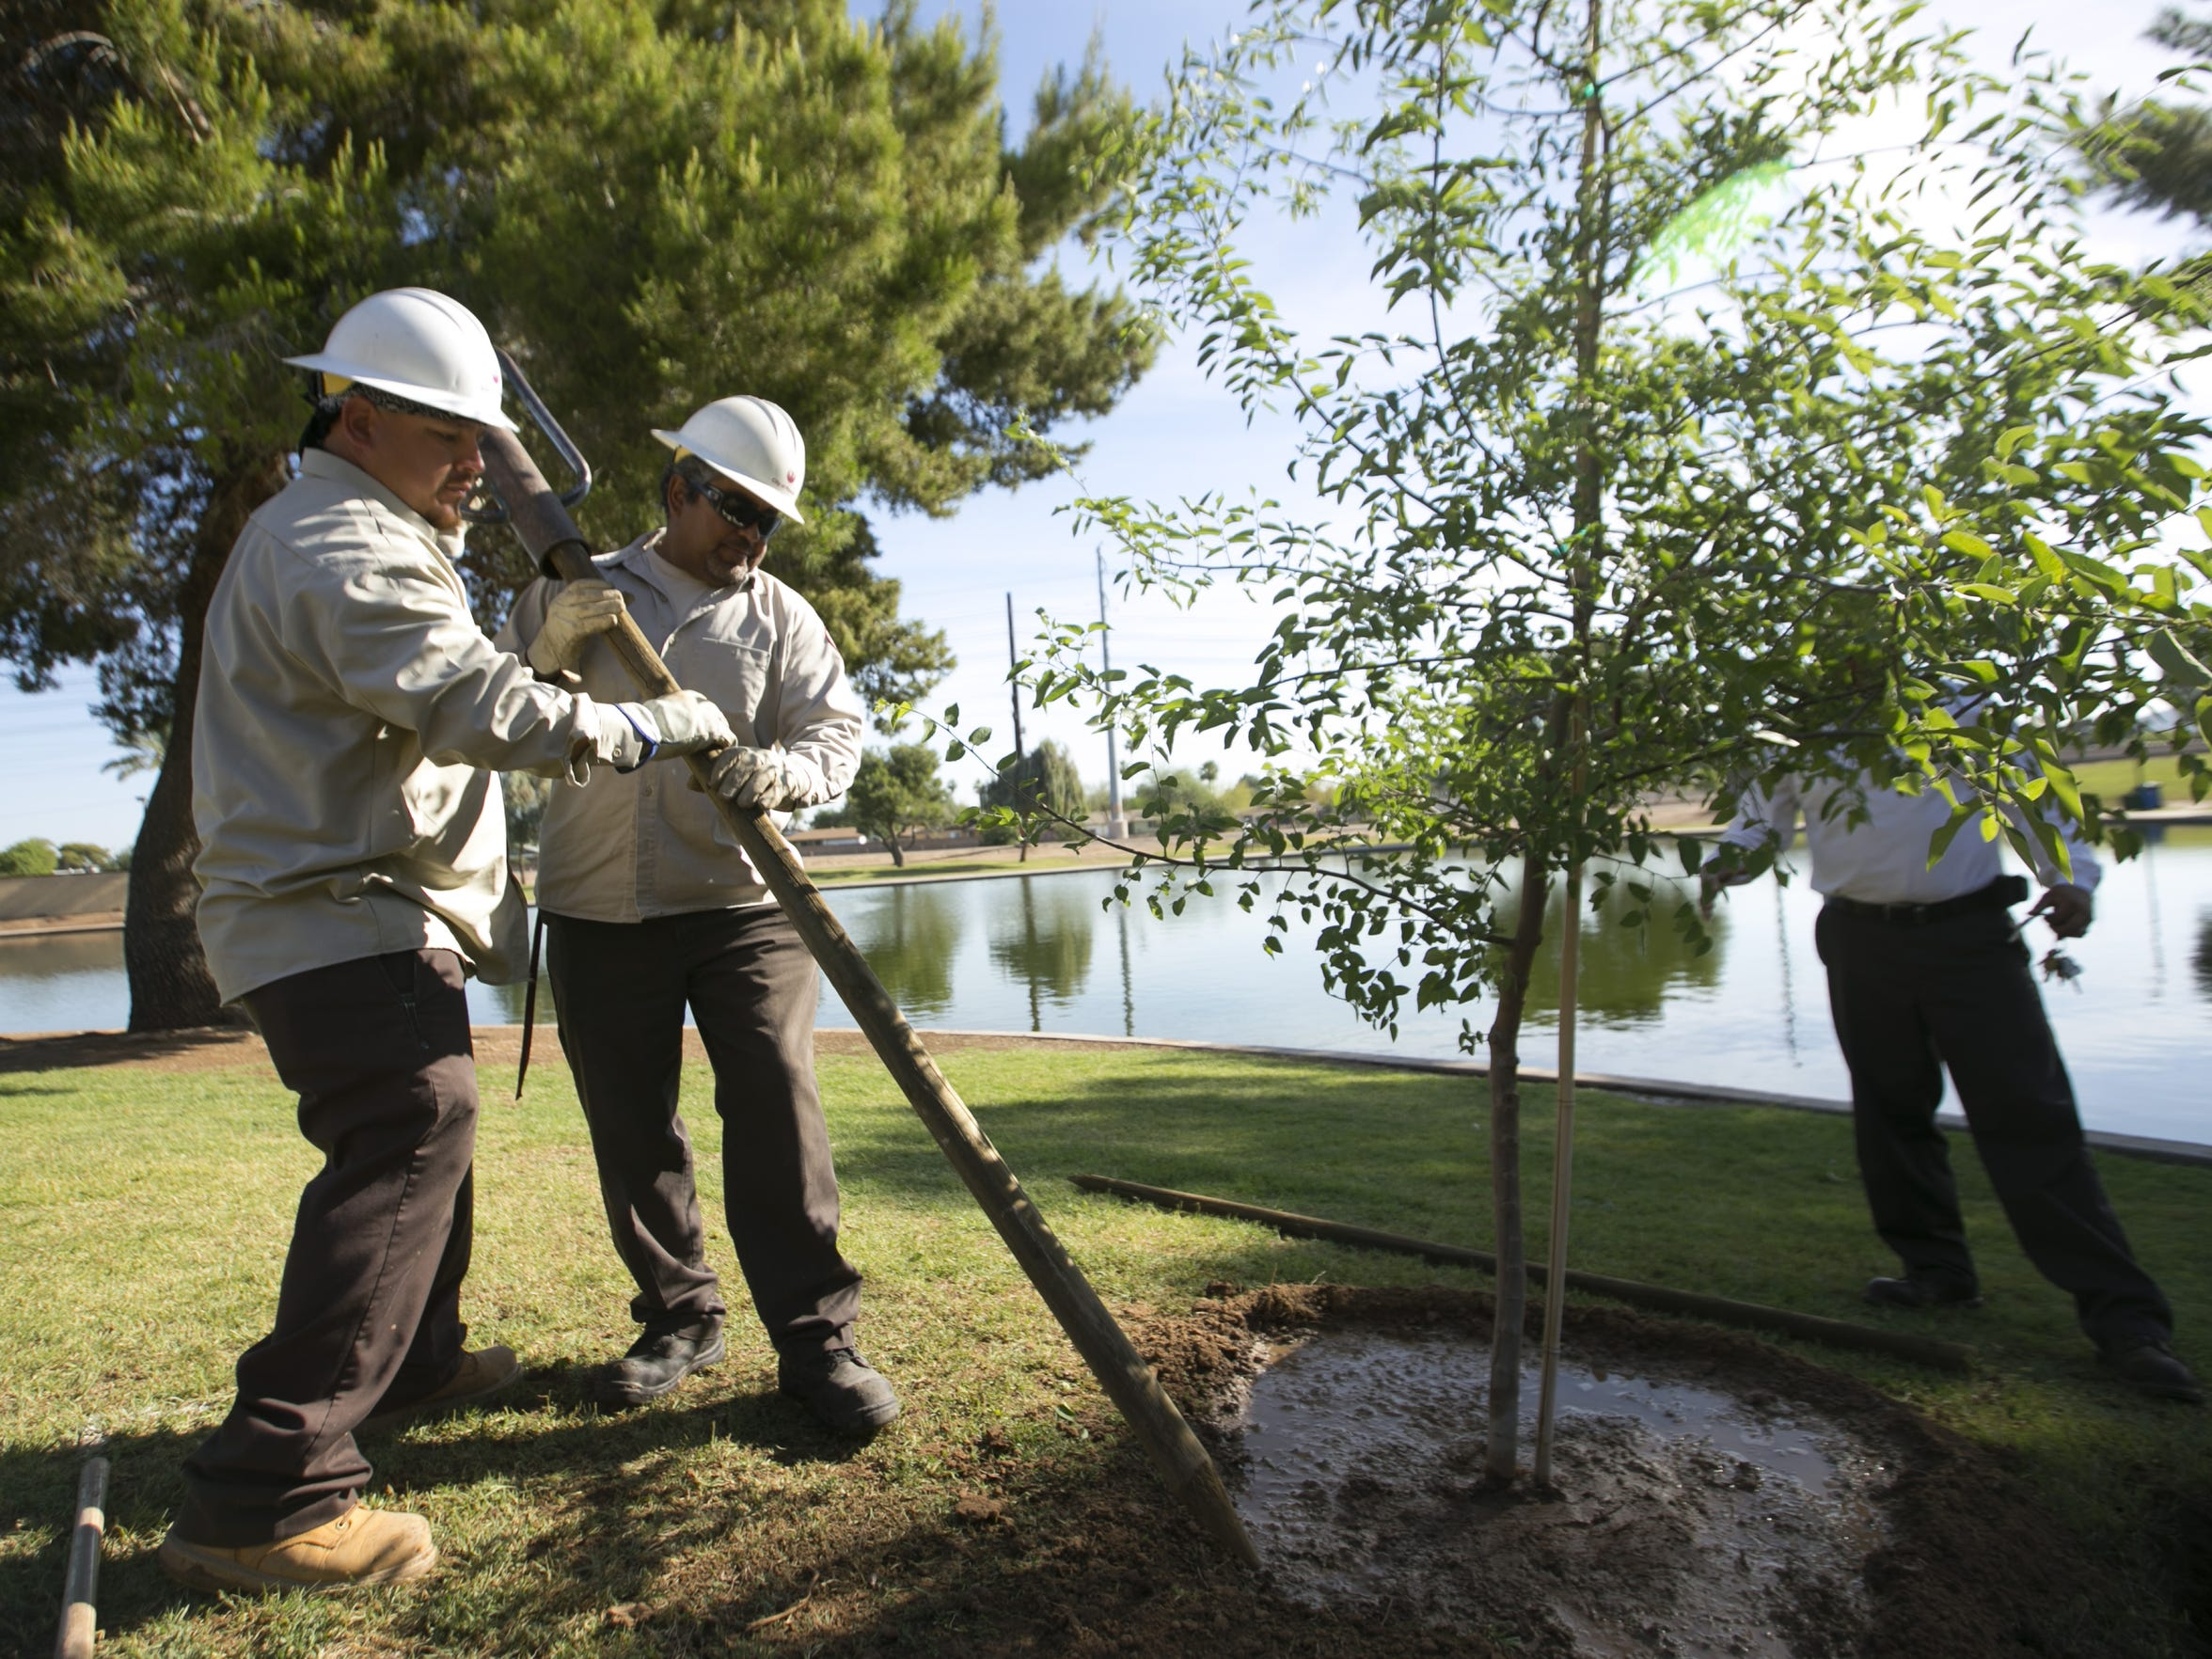 City of Phoenix employees Henry Martinez (left) and JR Valenzuela and Mark Paxton plant a tree at Cortez Park in Phoenix.